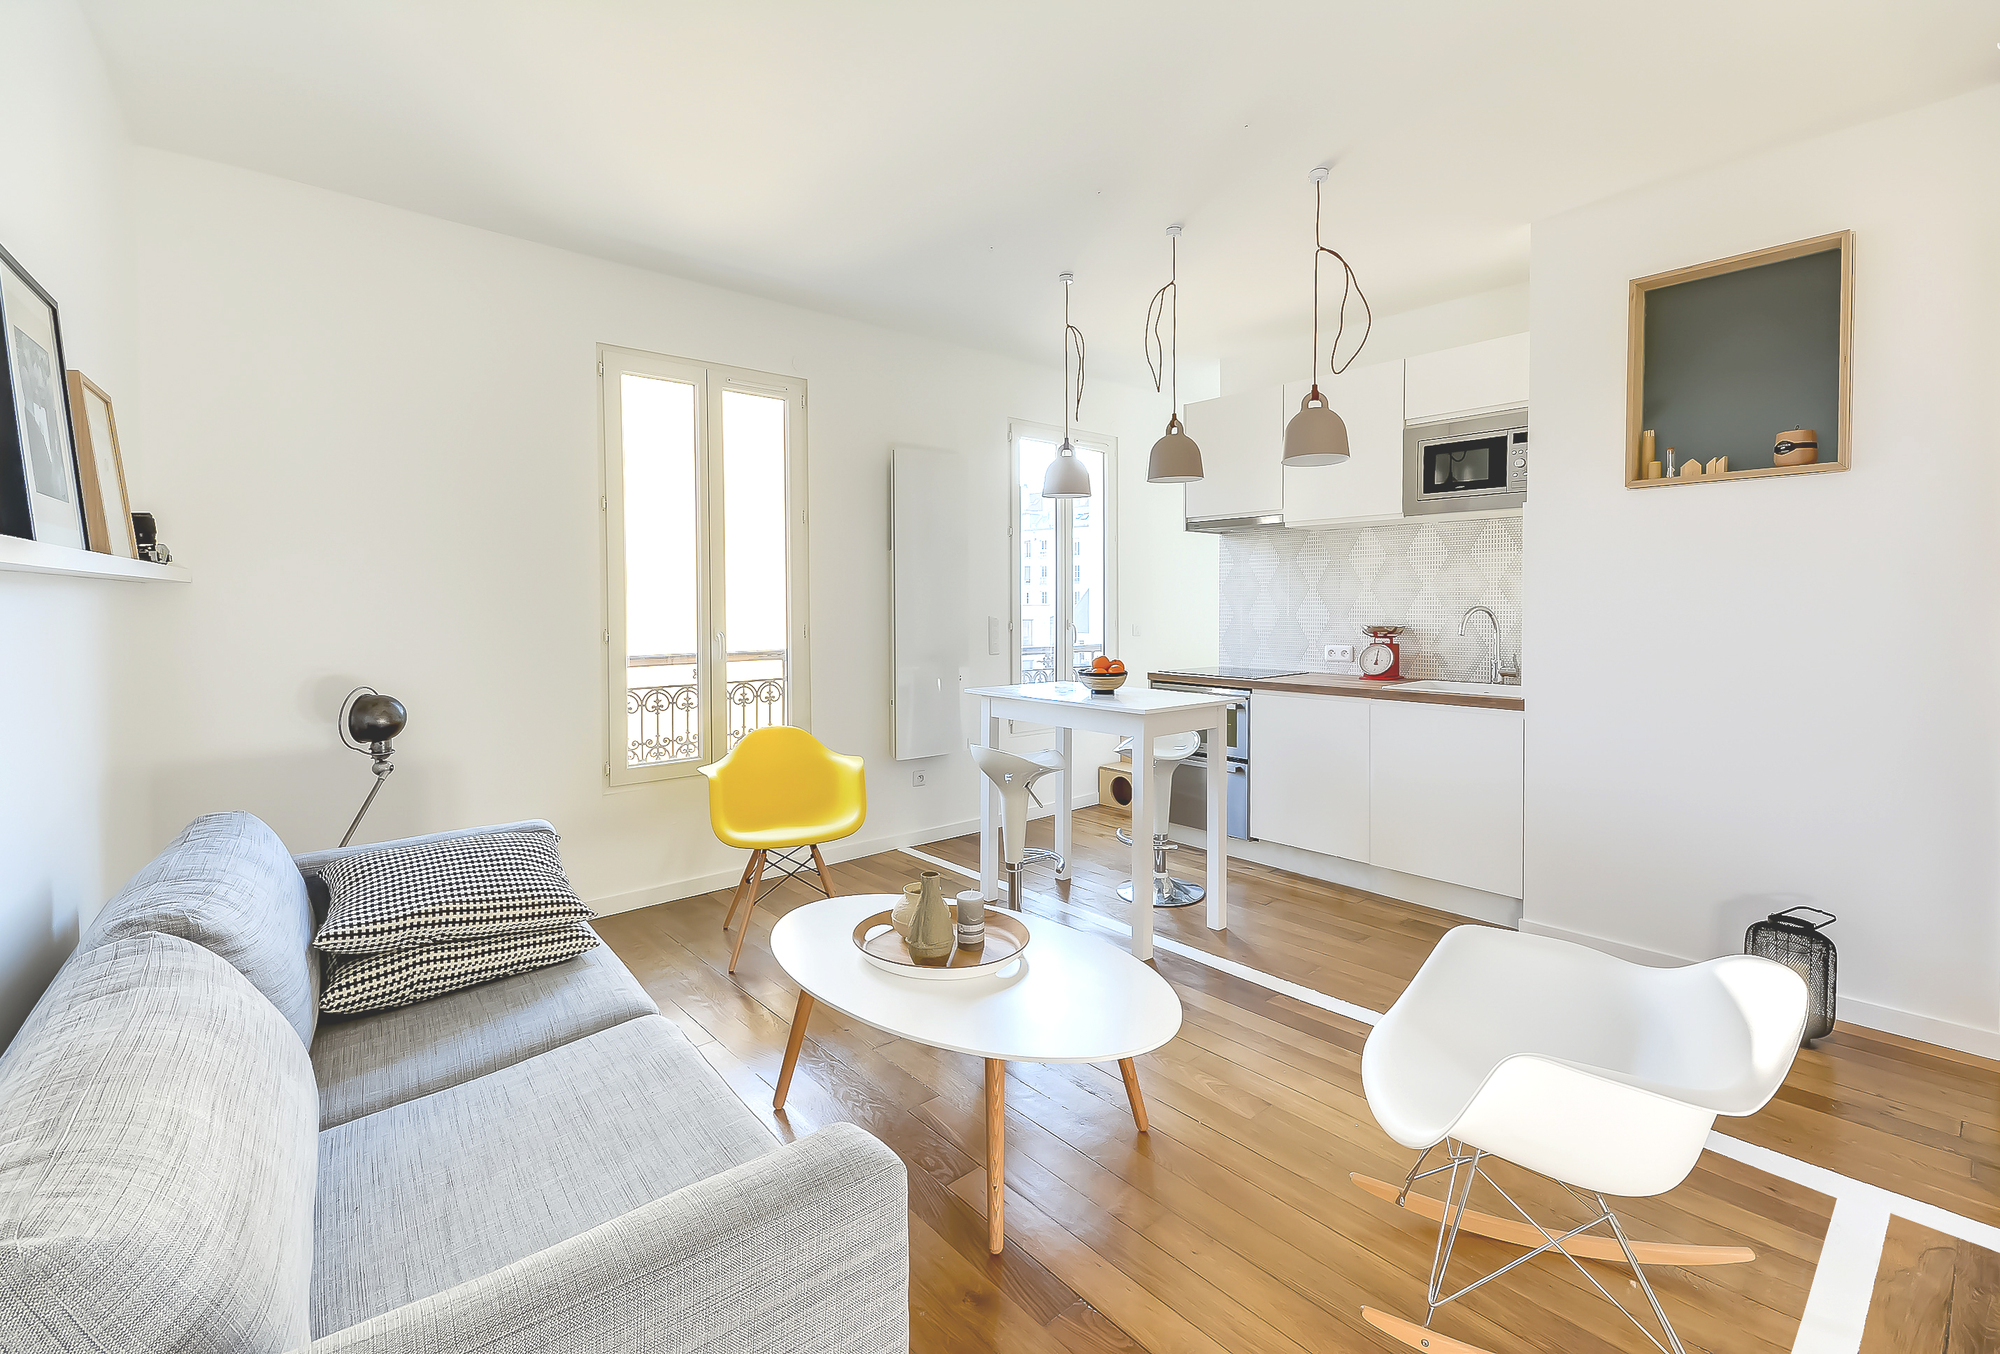 30m2 apartment in paris your no 1 source of architecture for Amenagement appartement 30 m2